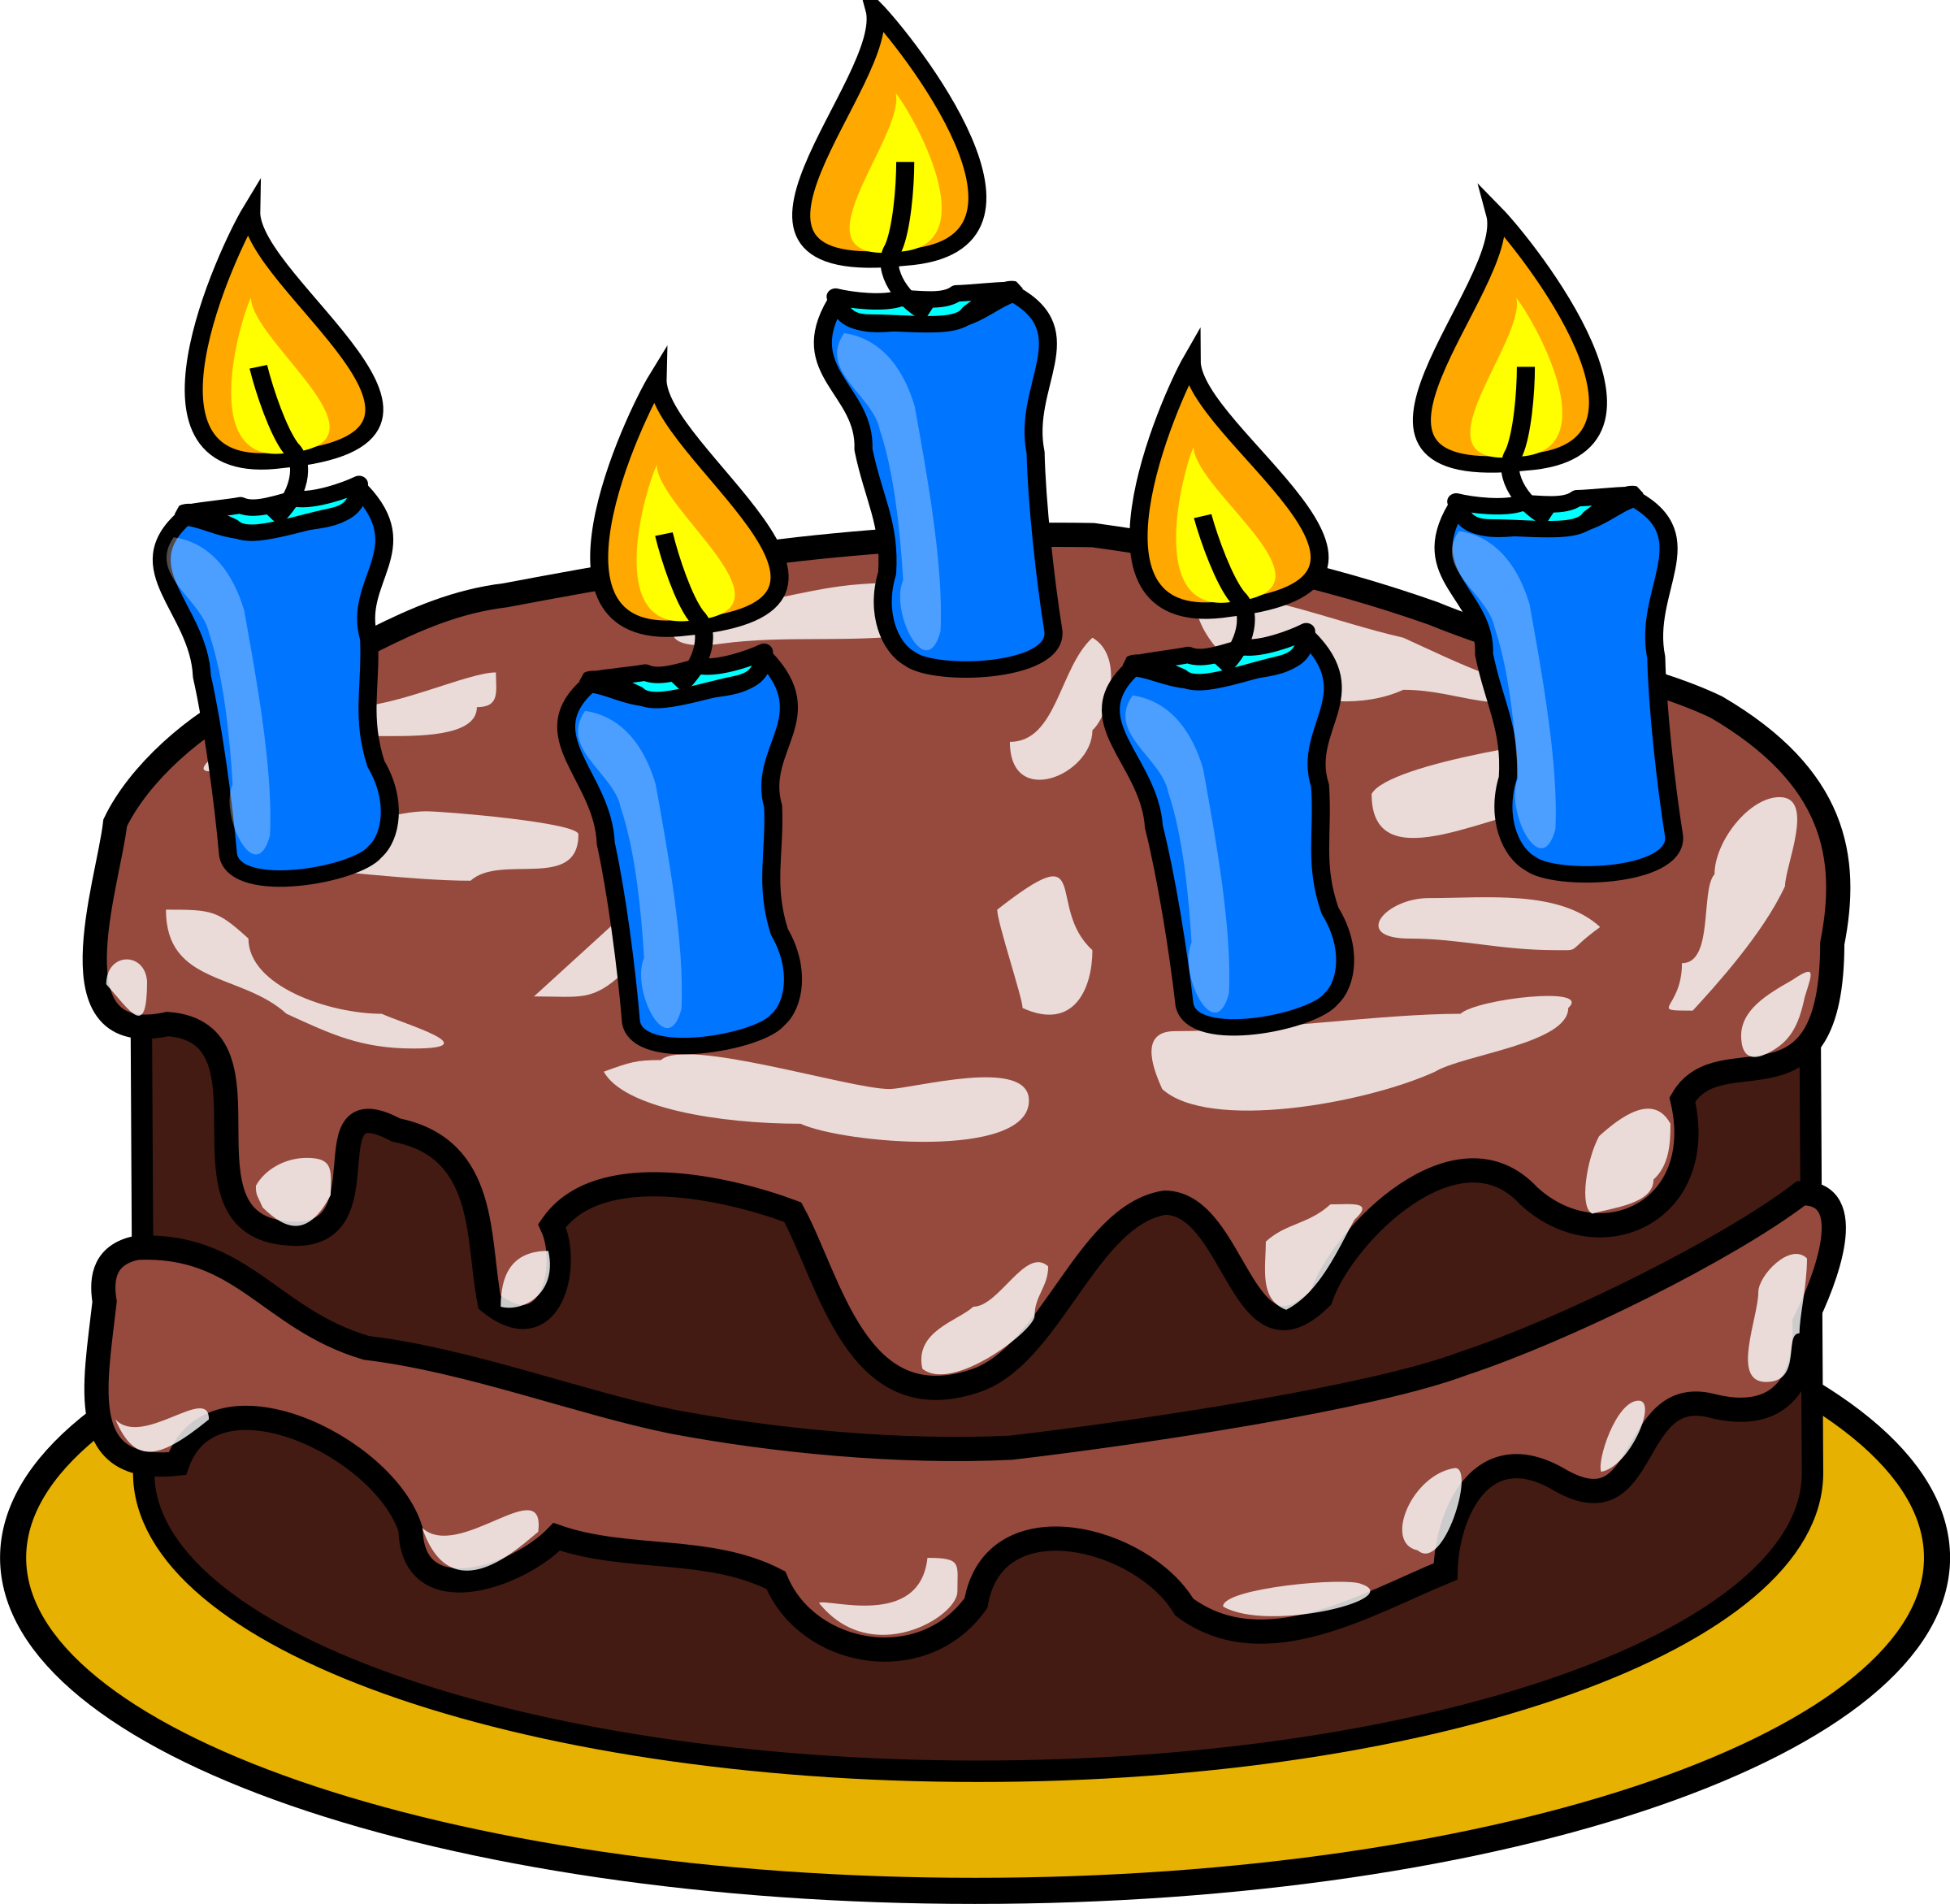 Clipart coffee cake. Chocolate birthday big image